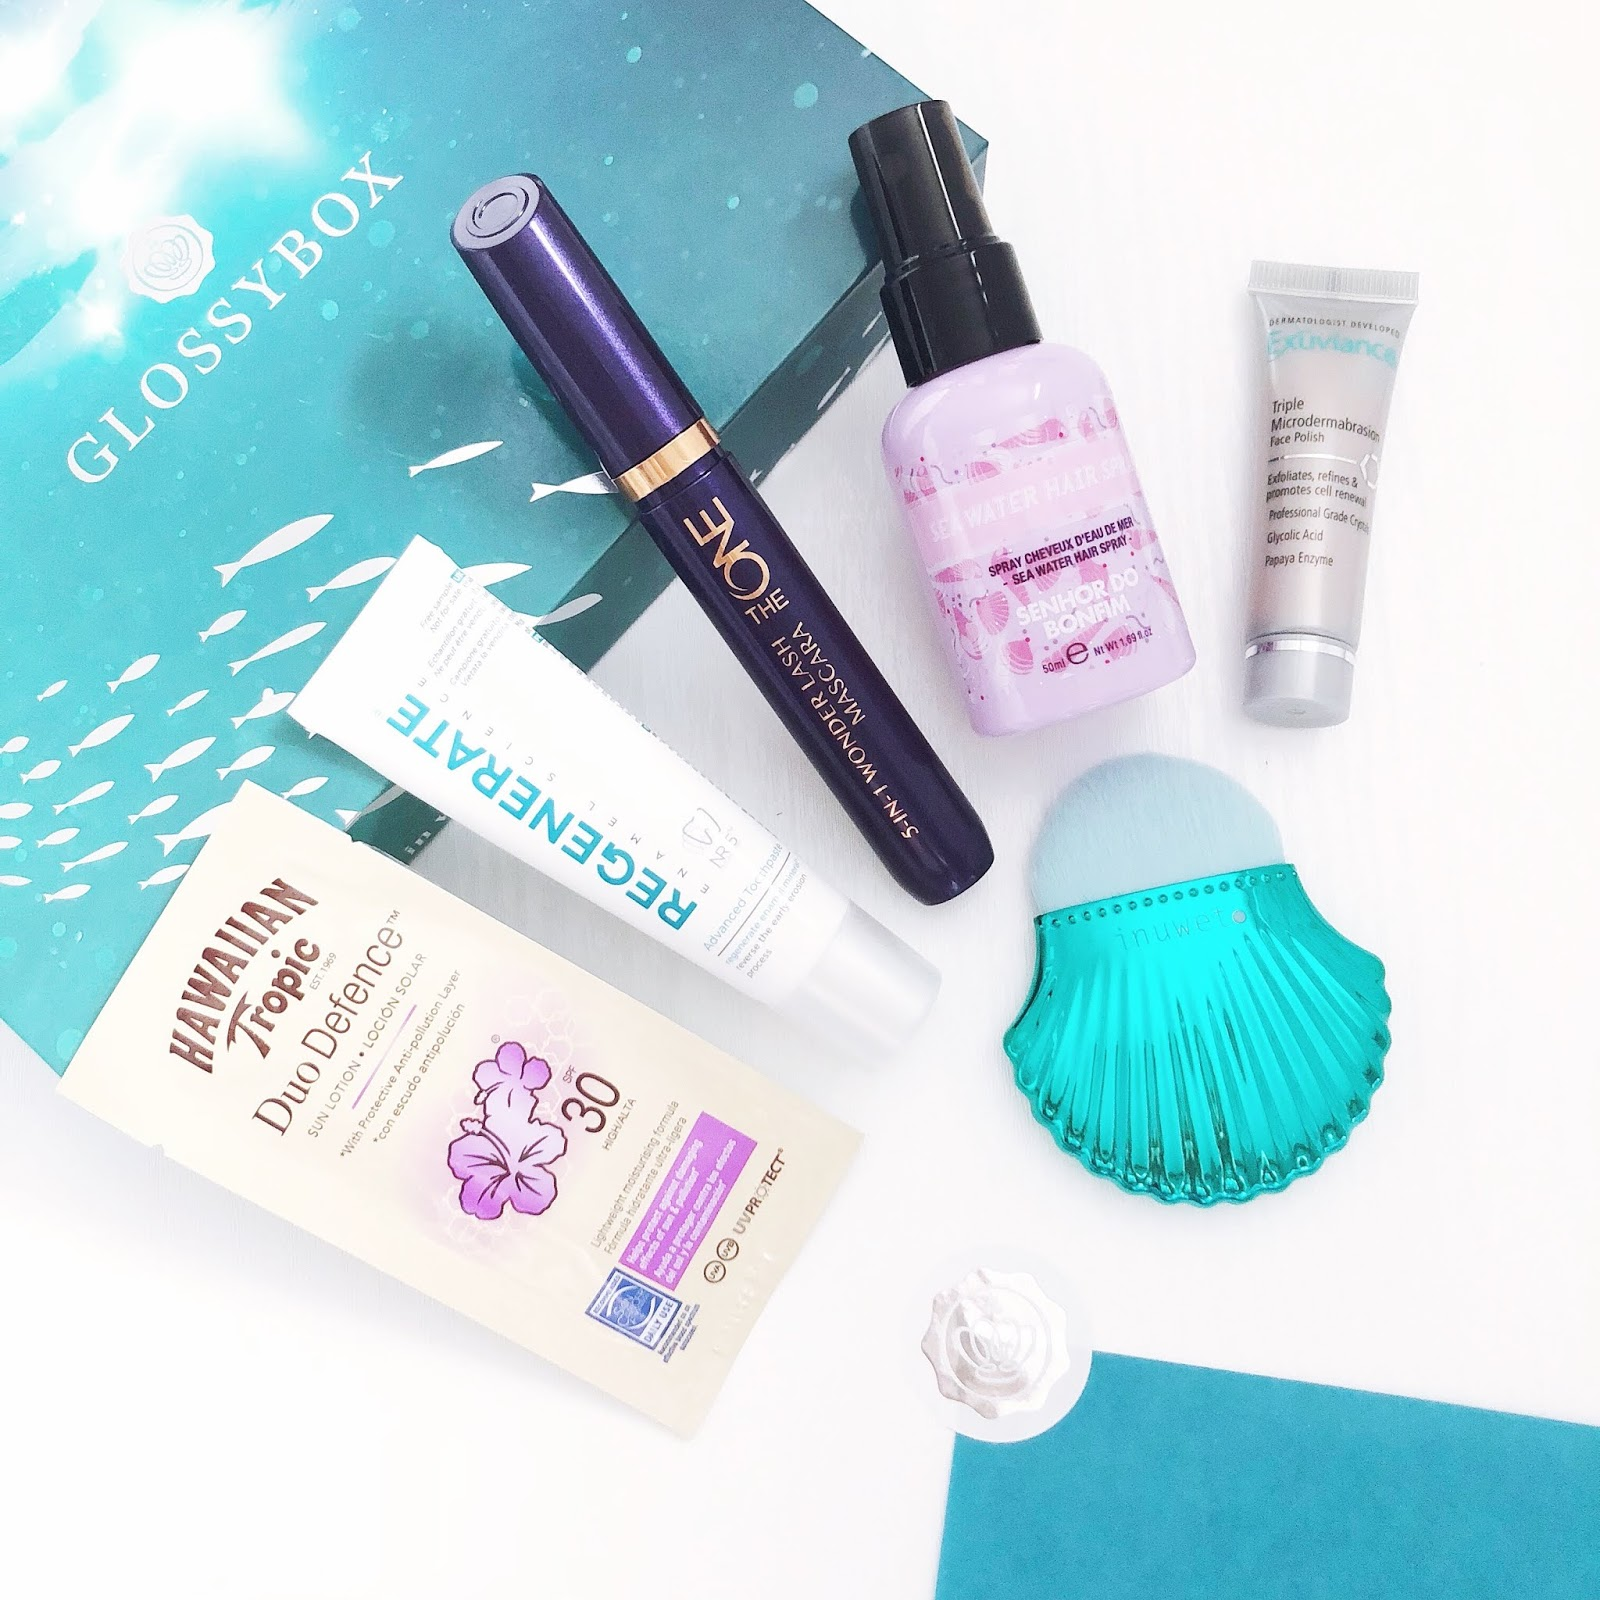 glossybox, hawaiin tropic, regenerate, oriflame, inuwet, exuvance